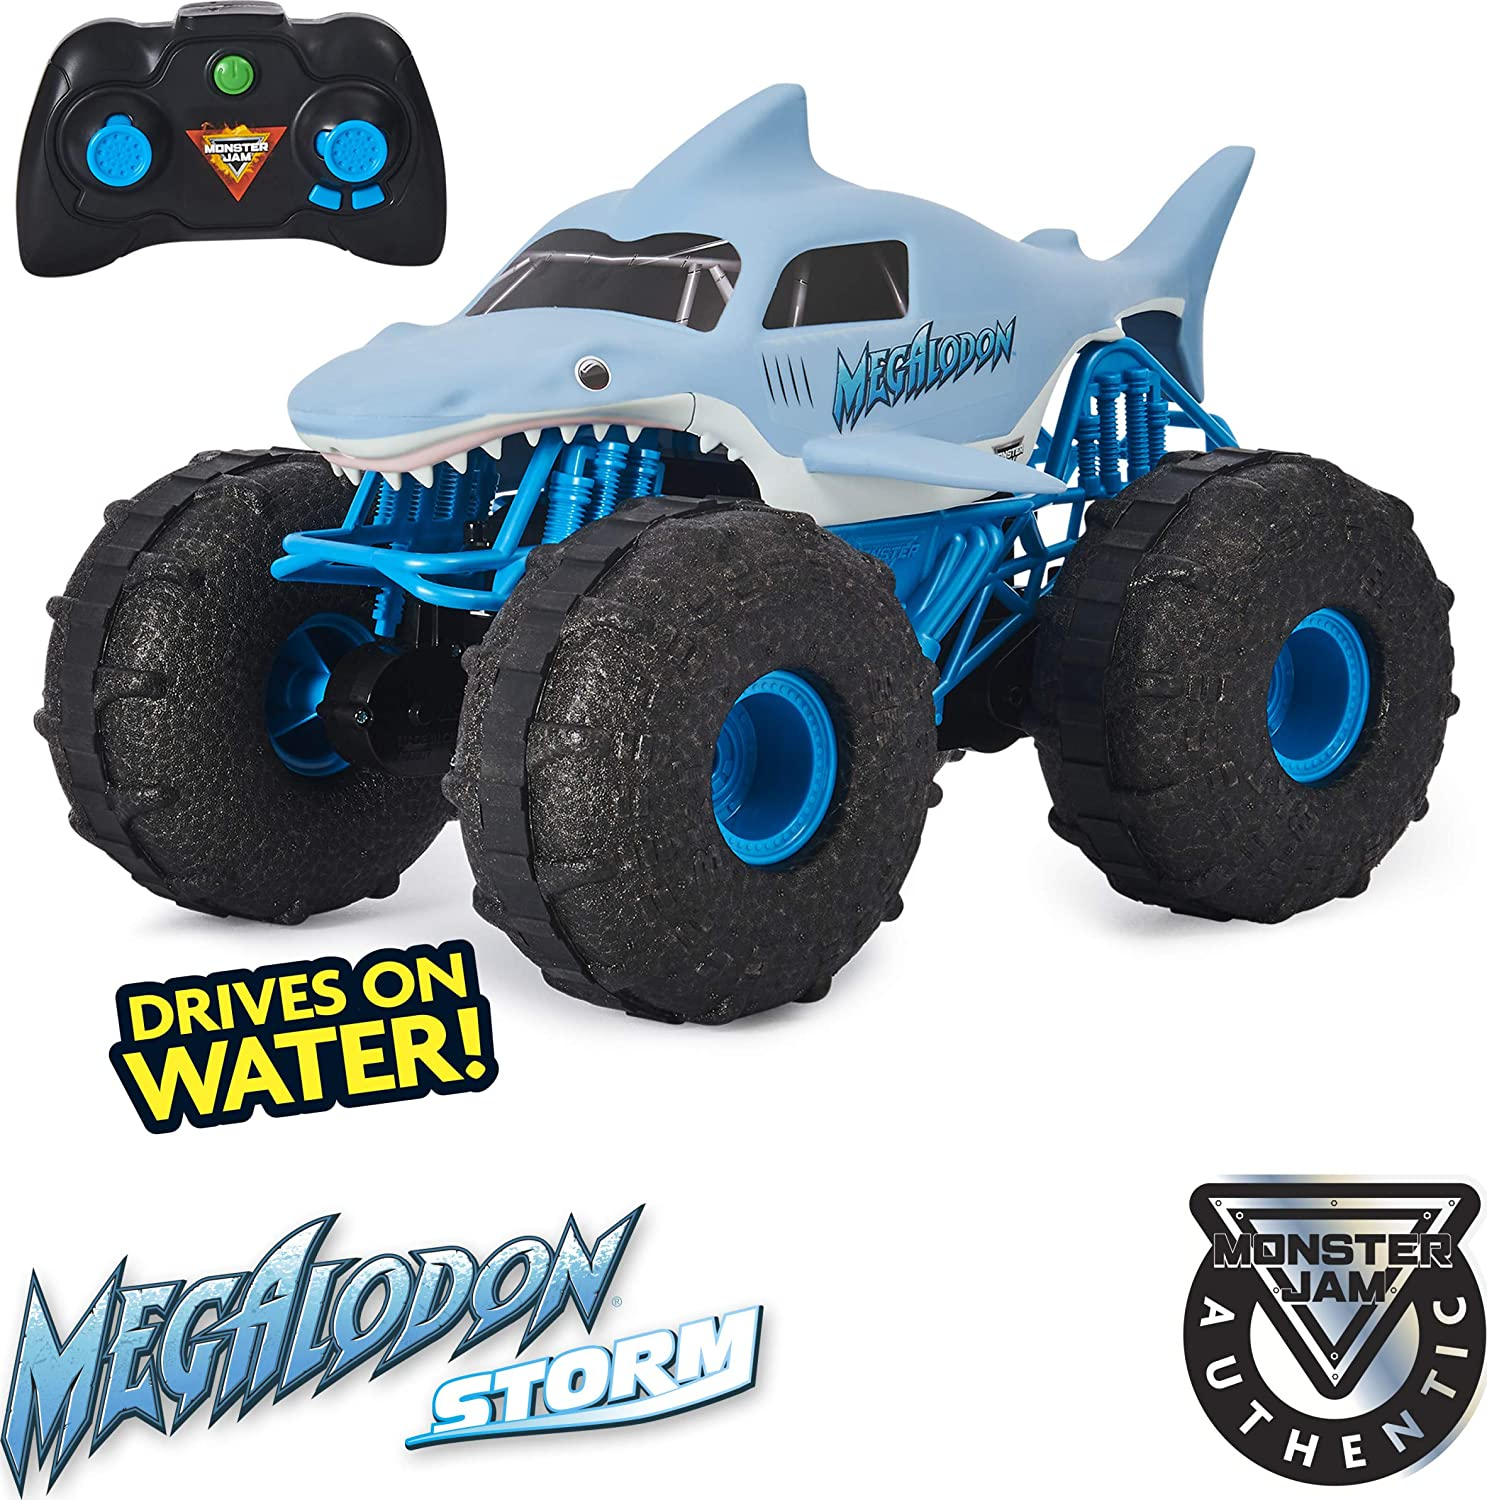 Monster Truck Megalodon - Truck and the controller